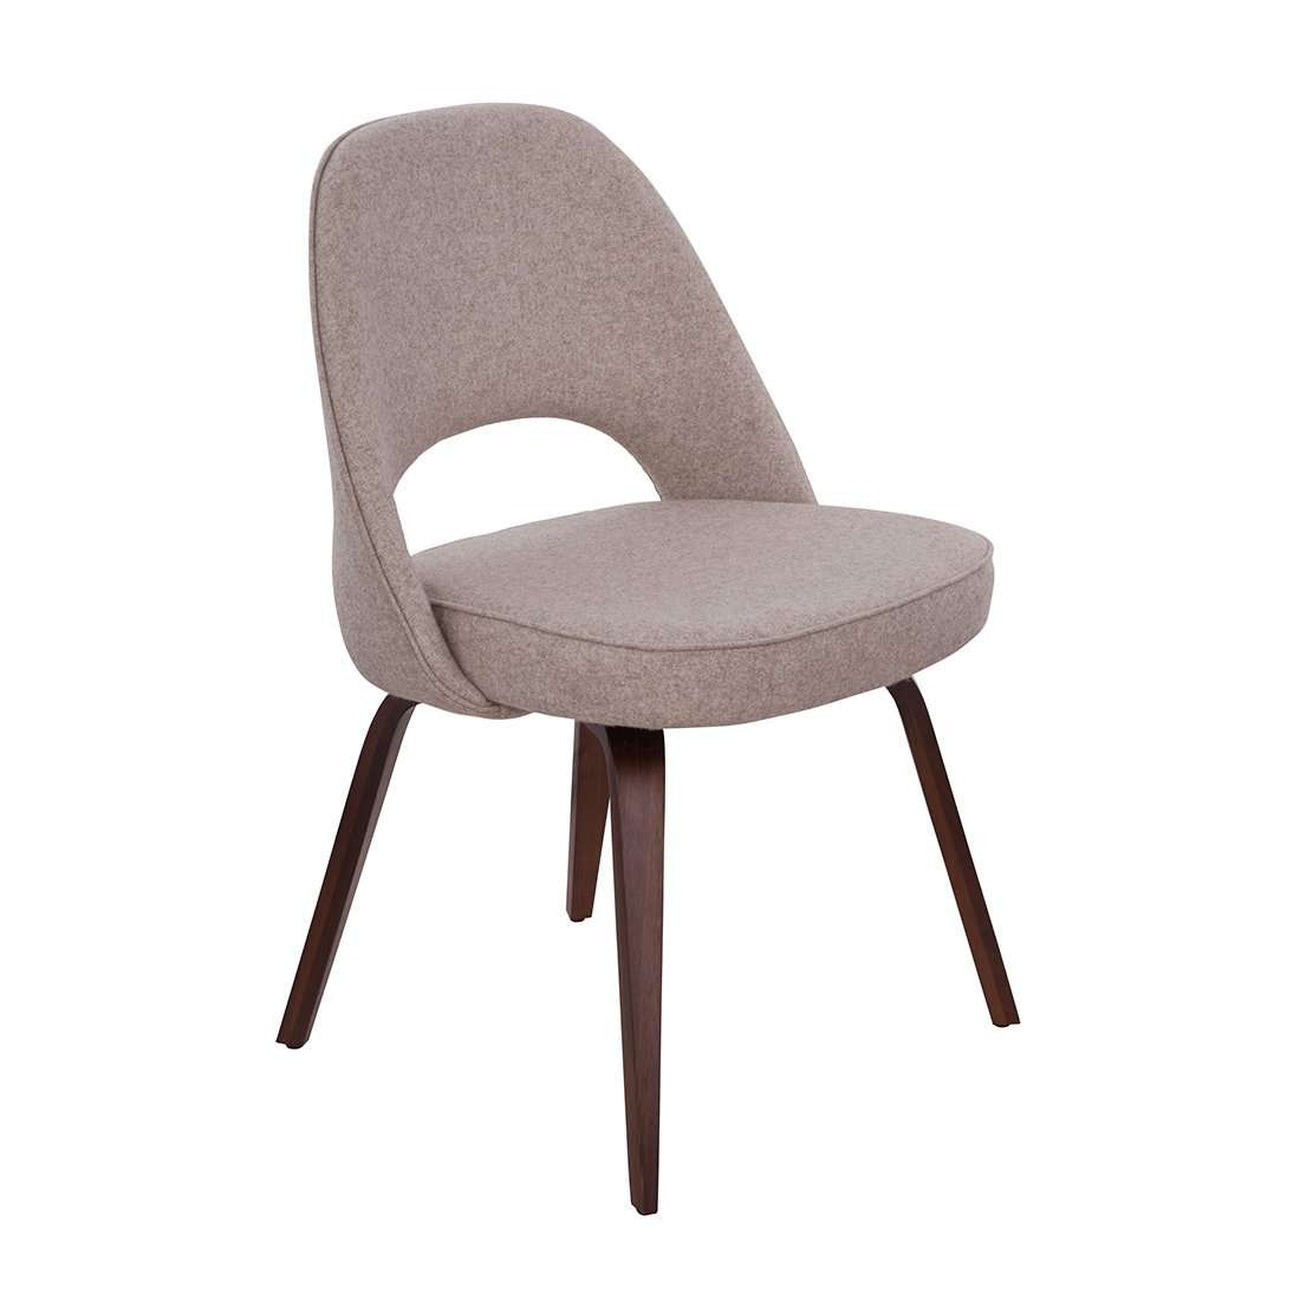 Executive Side Chair With Wood Legs   Wheat